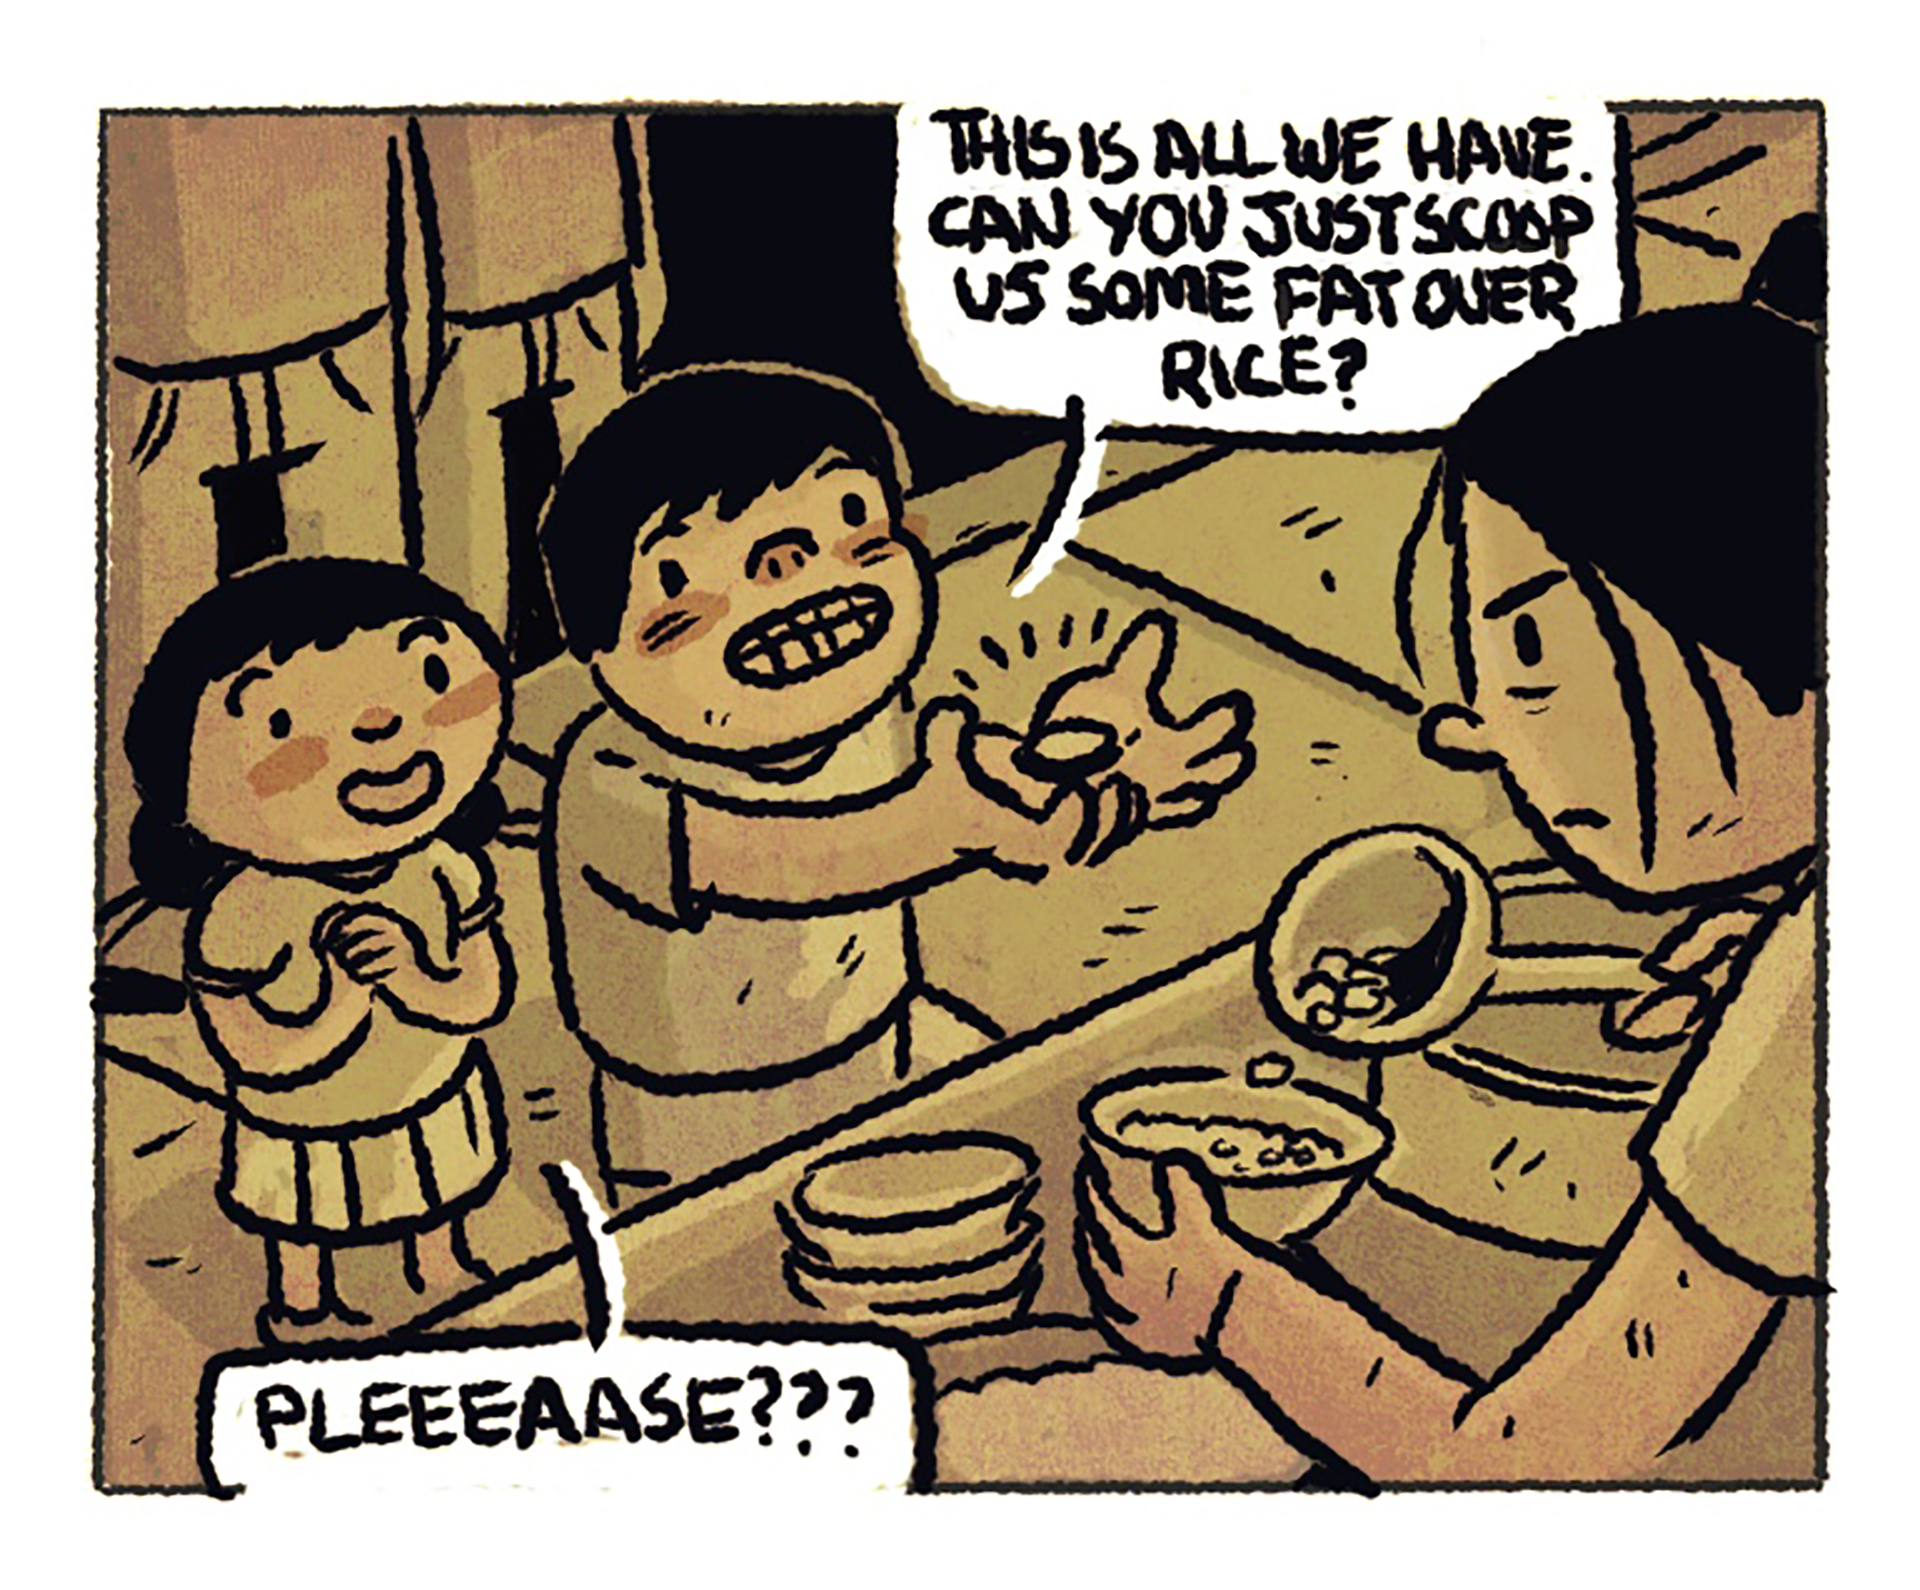 """Scene shifts to an even earlier time. A young boy and girl stand in front of a food stall with their arms outstretched while the owner ladles meat onto a bowl of rice. Speech bubble 1: """"This is all we have. Can you just scoop us some fat over rice?"""" Speech bubble #2: """"PLEEEAASE???"""""""